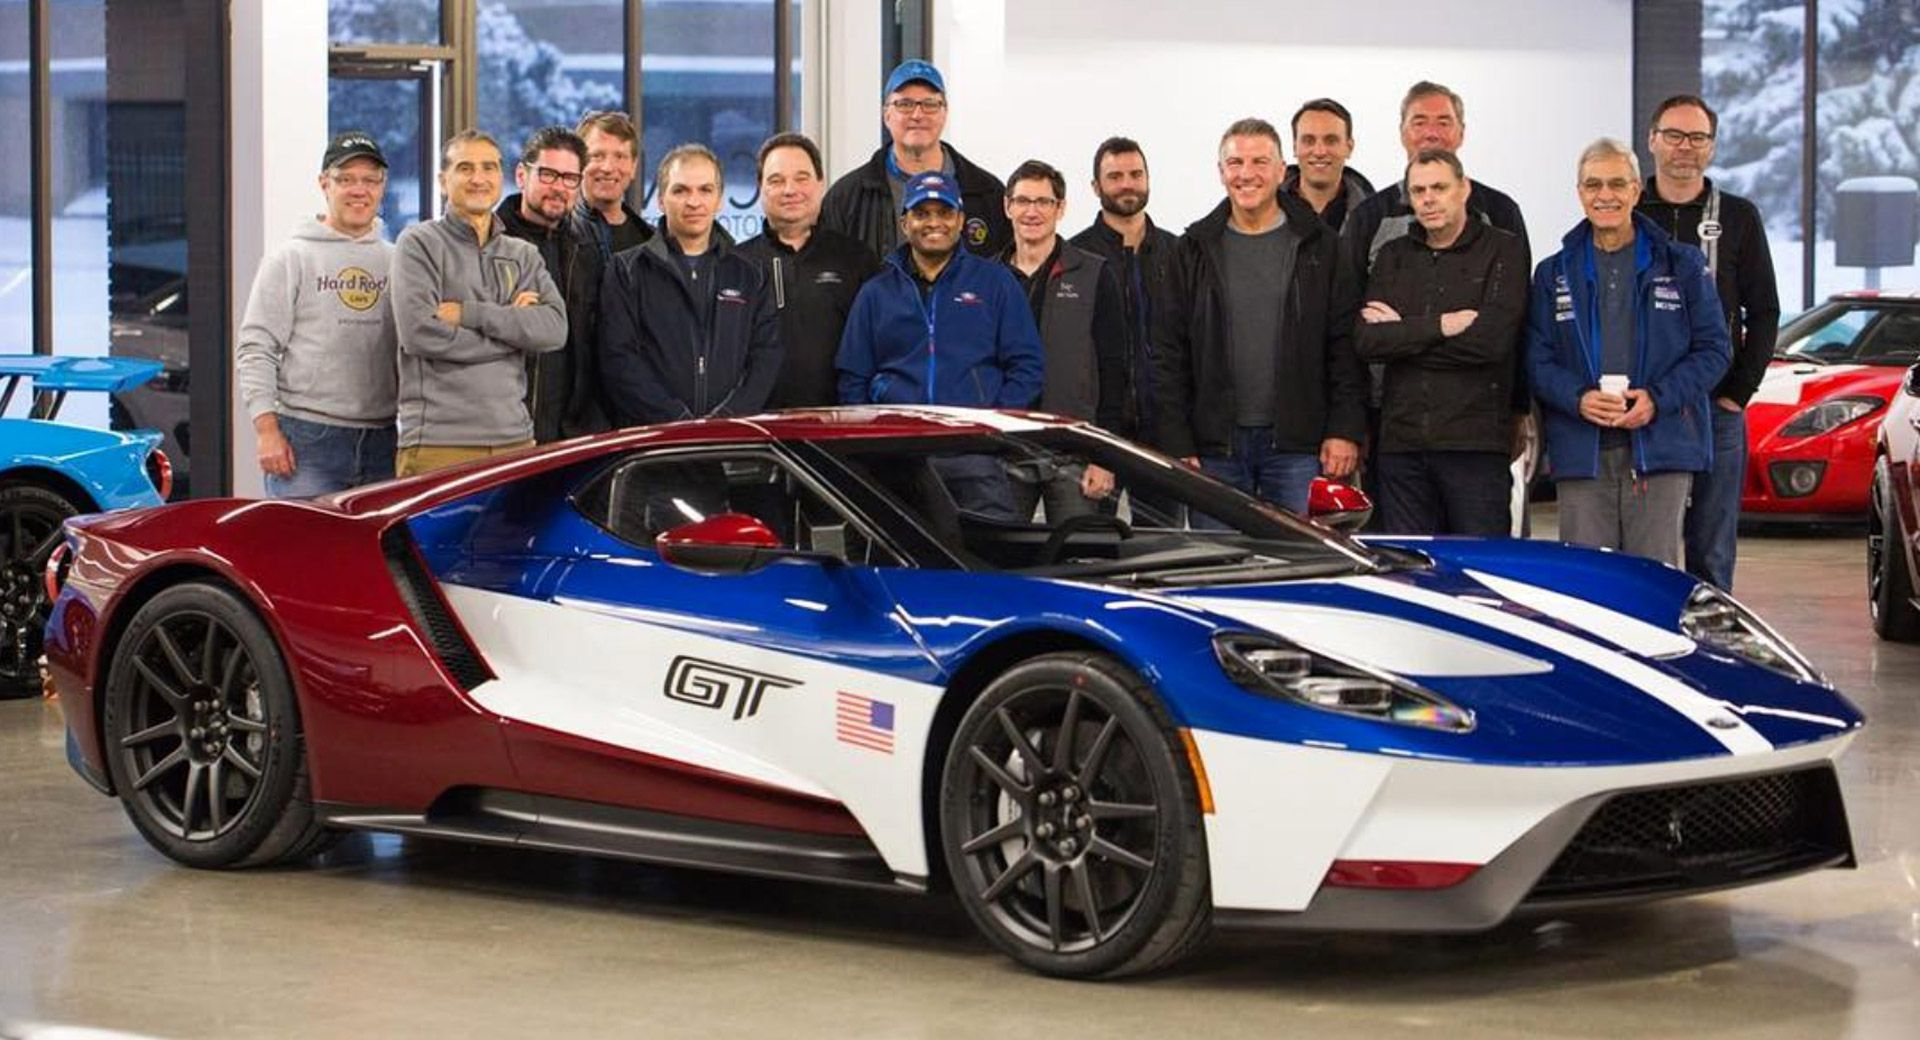 You Can Order A Ford Gt With This Racing Livery But Only If You